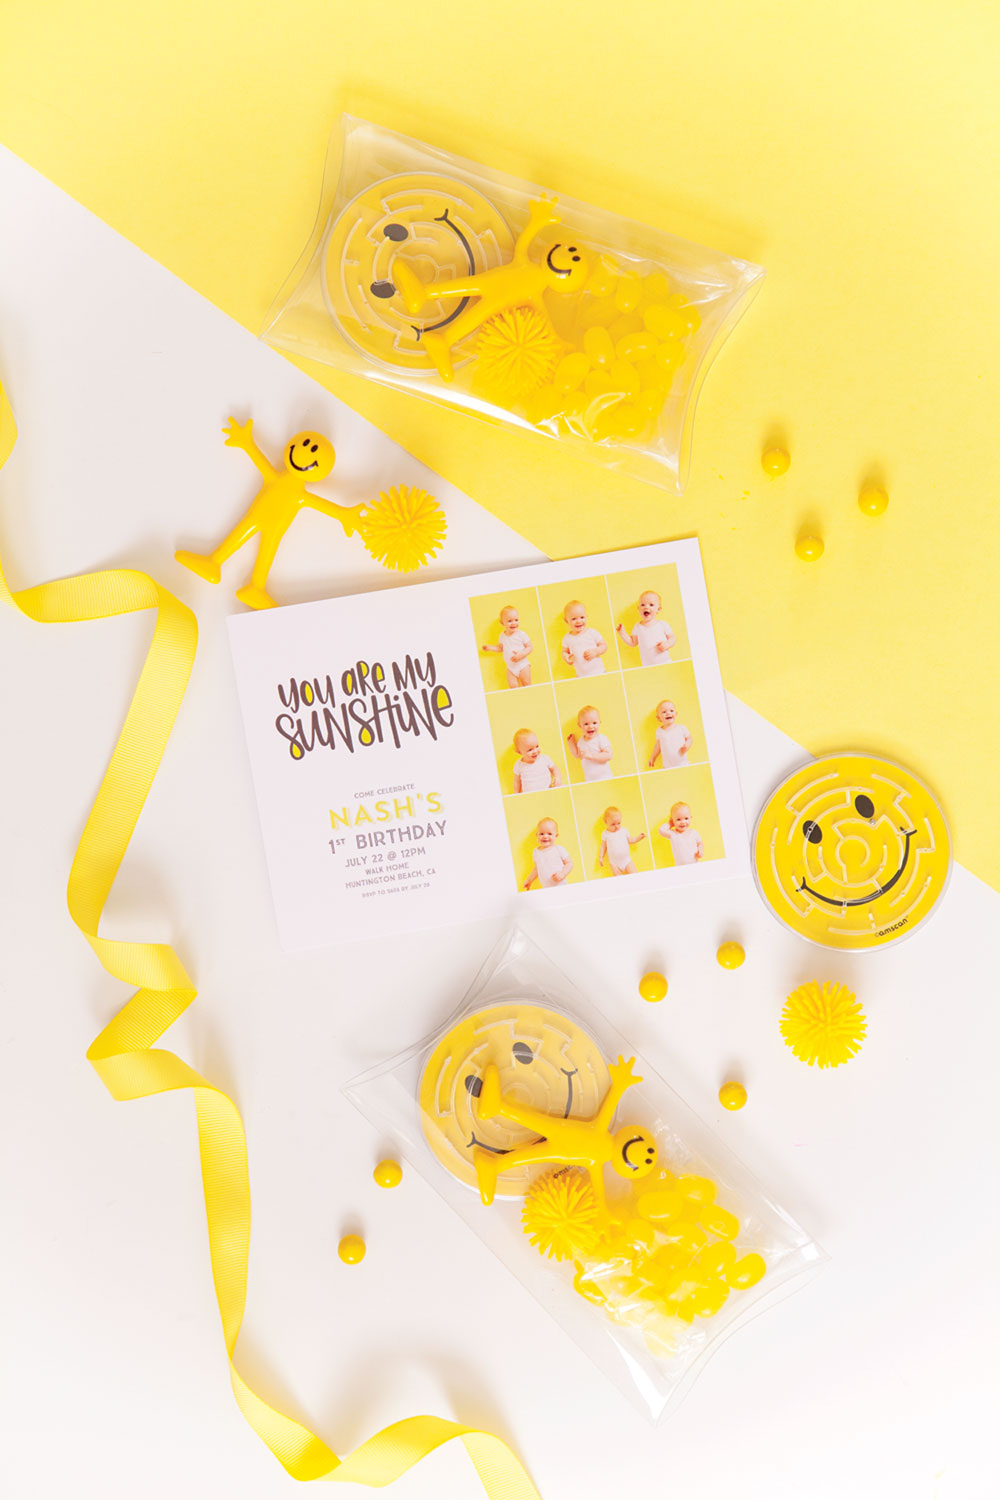 You-are-my-sunshine-invitation-and-party-favor-ideas